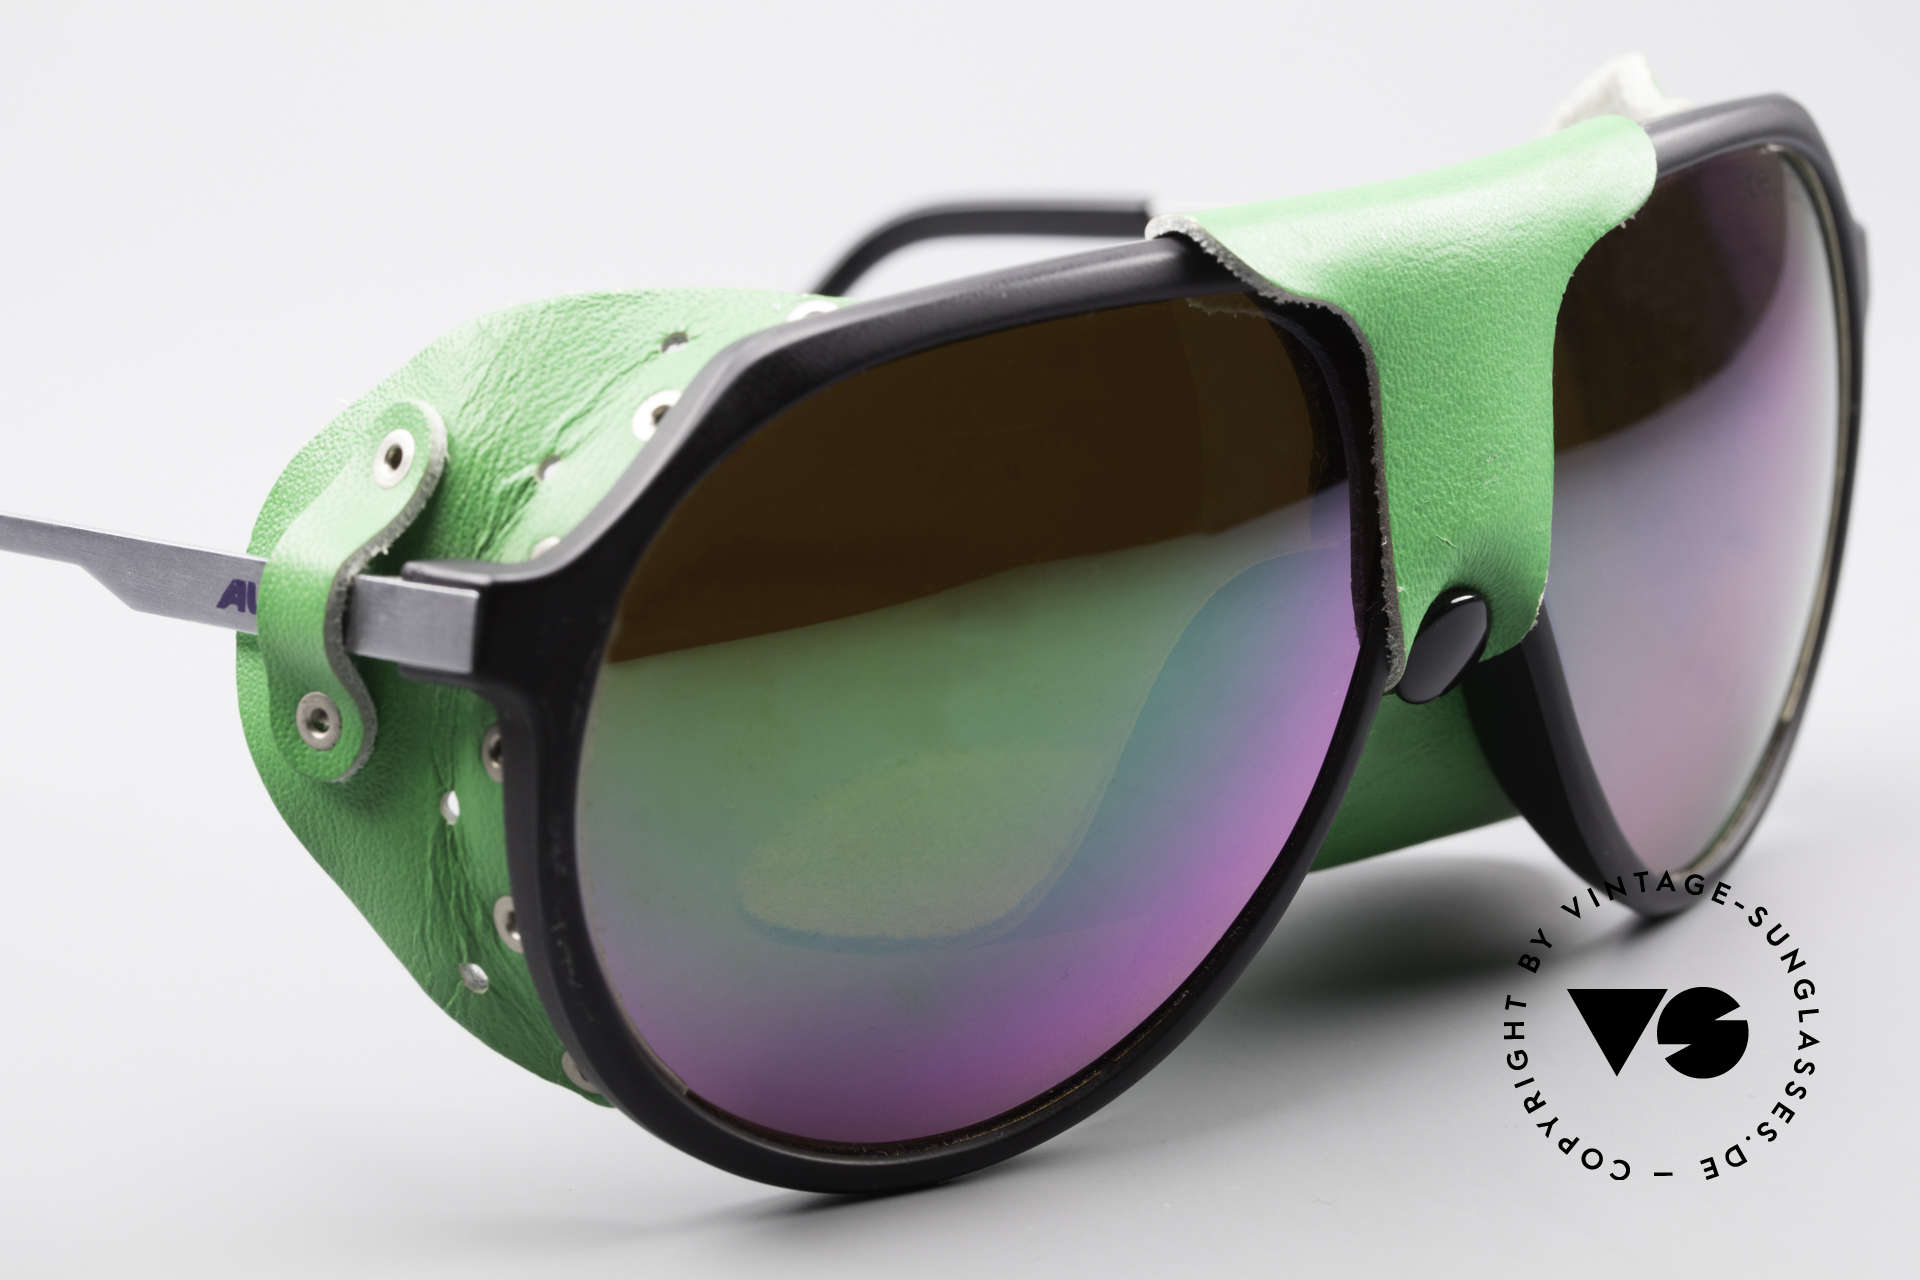 Alpina Profi Sports Glacier Sunglasses, unworn, NOS (like all our vintage Alpina sports shades), Made for Men and Women